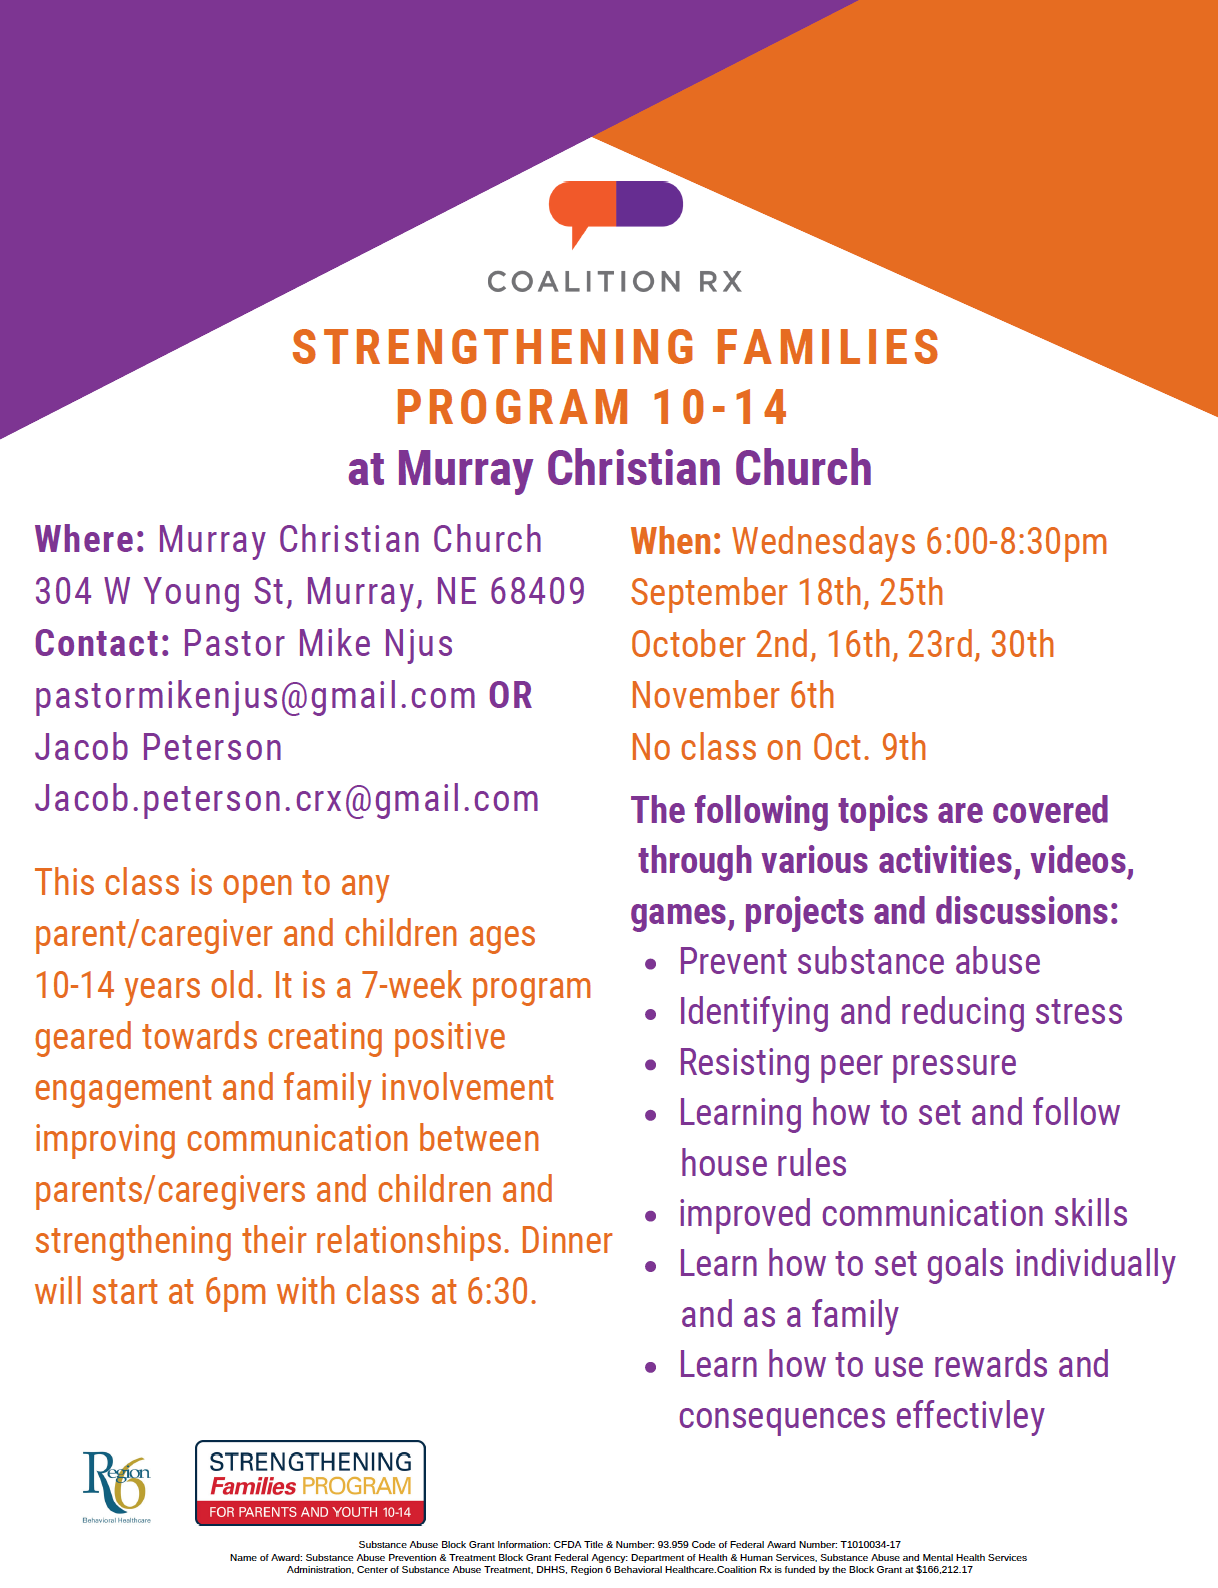 Strengthening Families Program 10-14 with Murray Christian Church